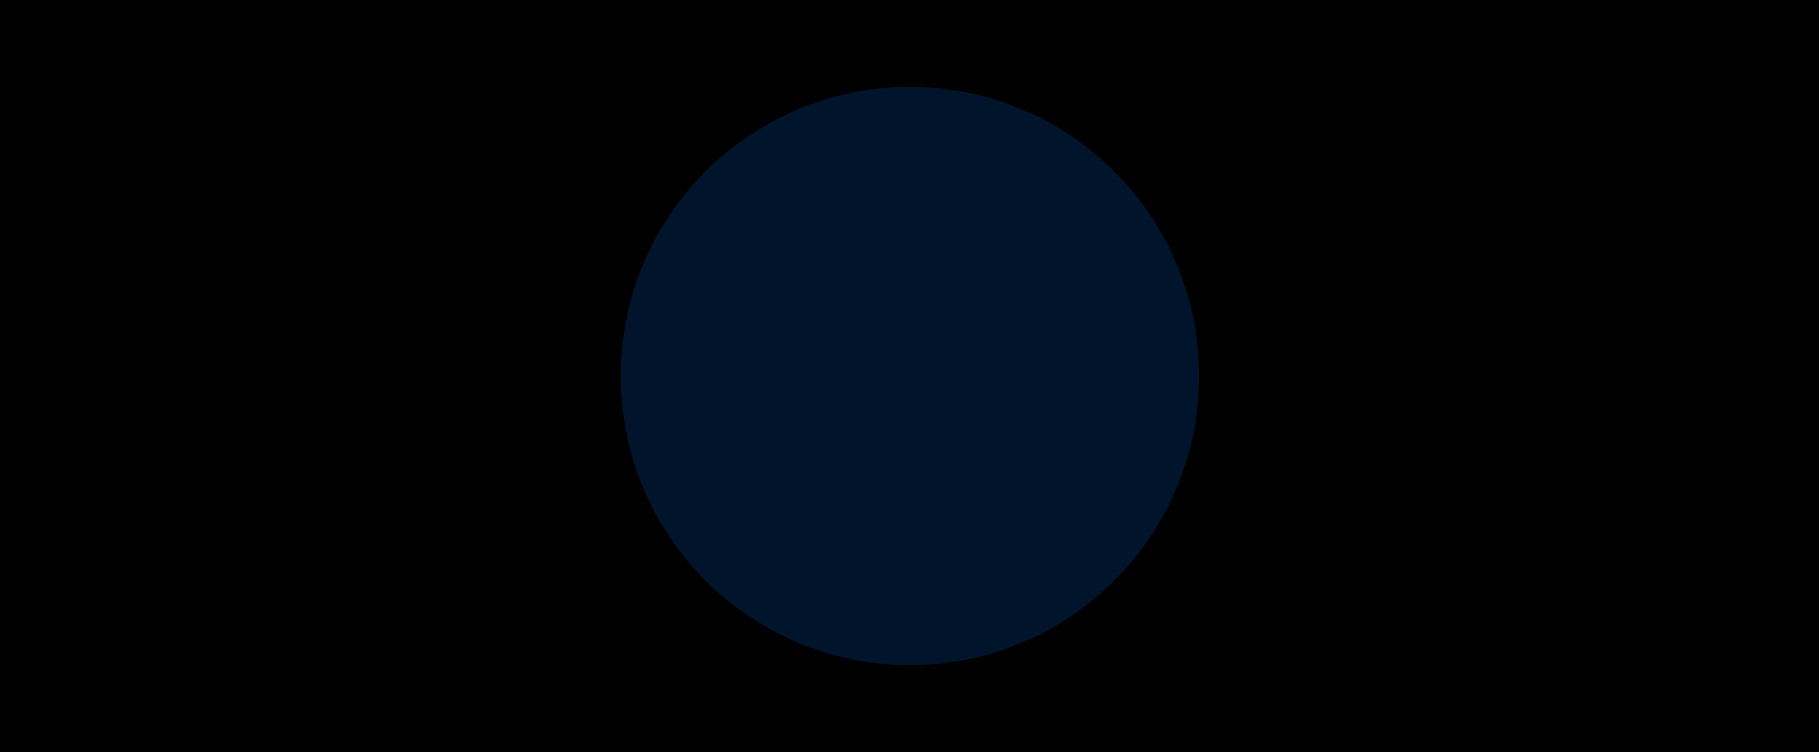 a dark blue spot on a black canvas - how dismal can you possibly get?